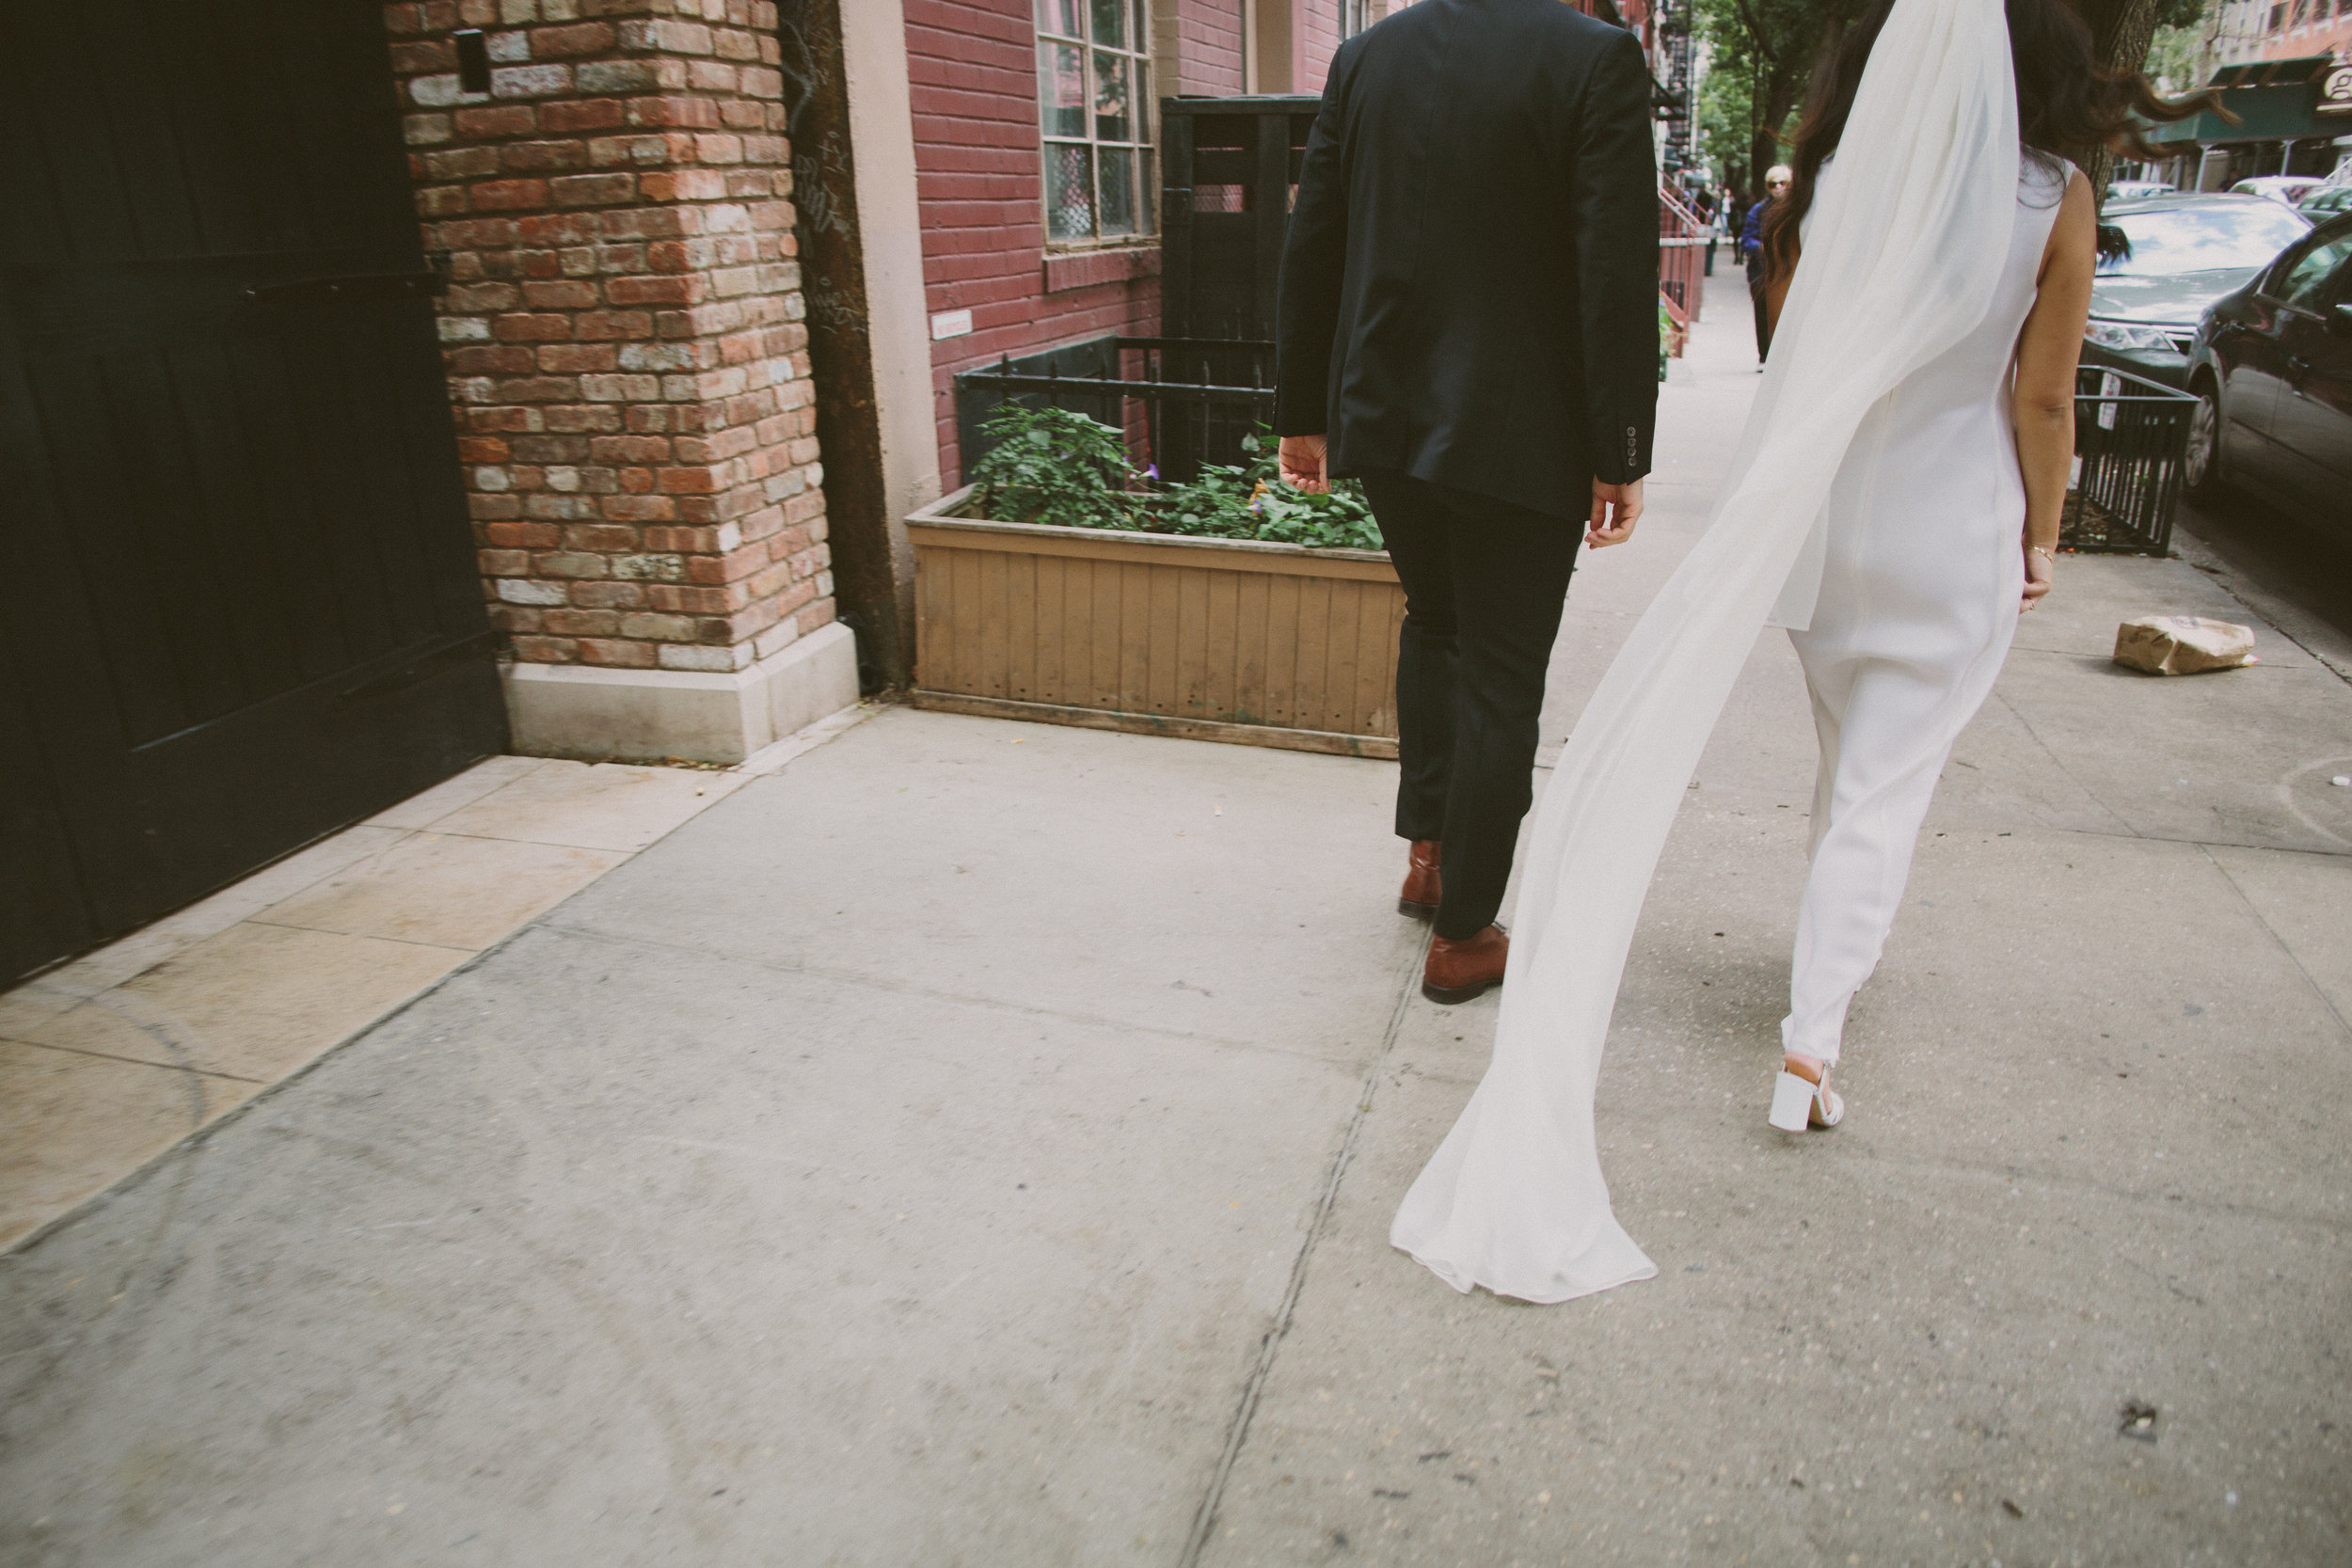 Tall & Small Events NYC, K+R, Modern, Jewish-Chinese Interfaith Urban New York City Real Wedding at Marble Cemetery East Village & Golden Unicorn Restaurant Chinatown, NYC. Photo: CityLove Photography